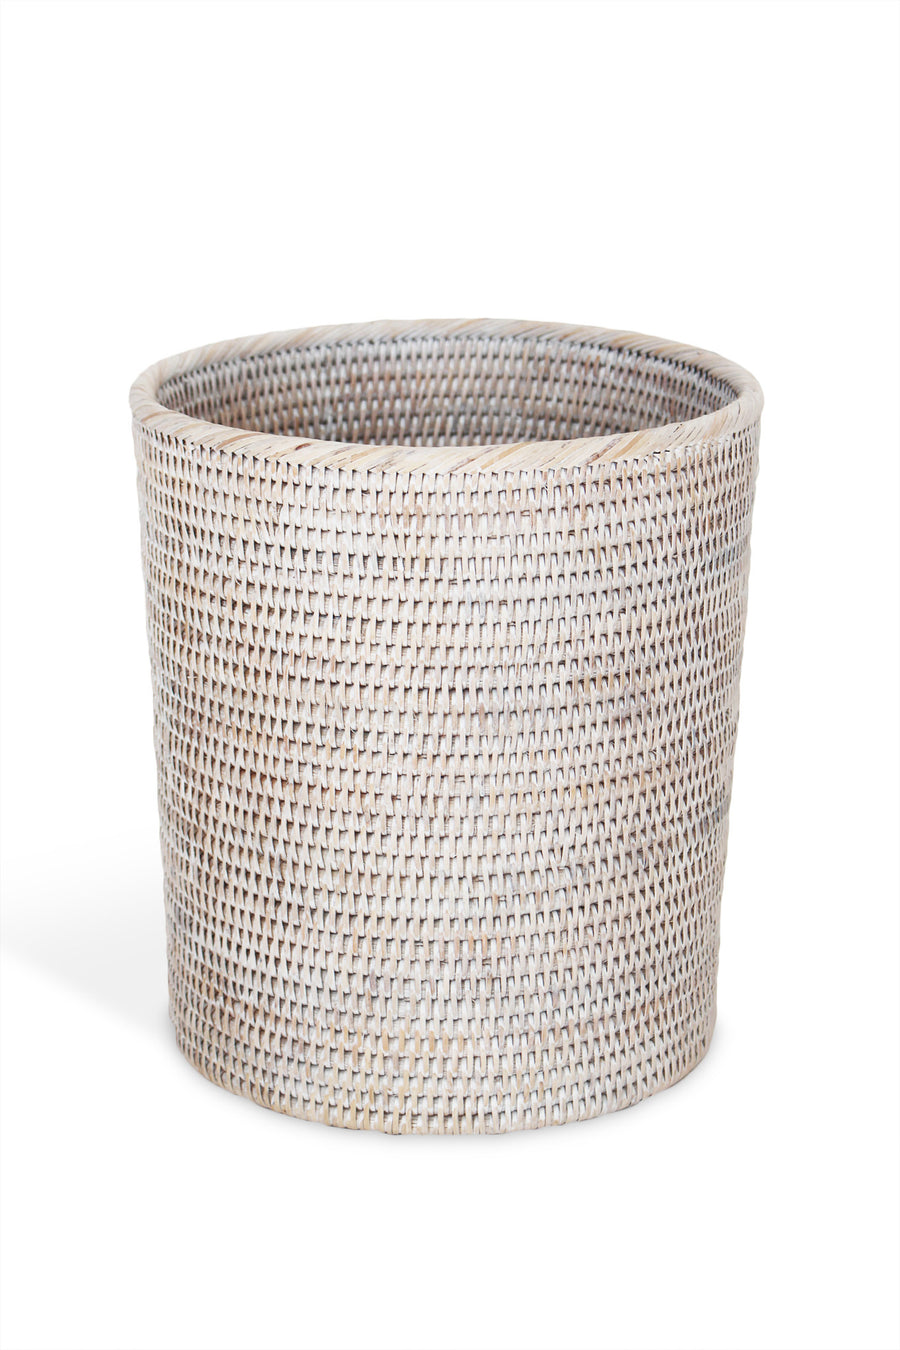 Small Round Waste Basket / Planter 11